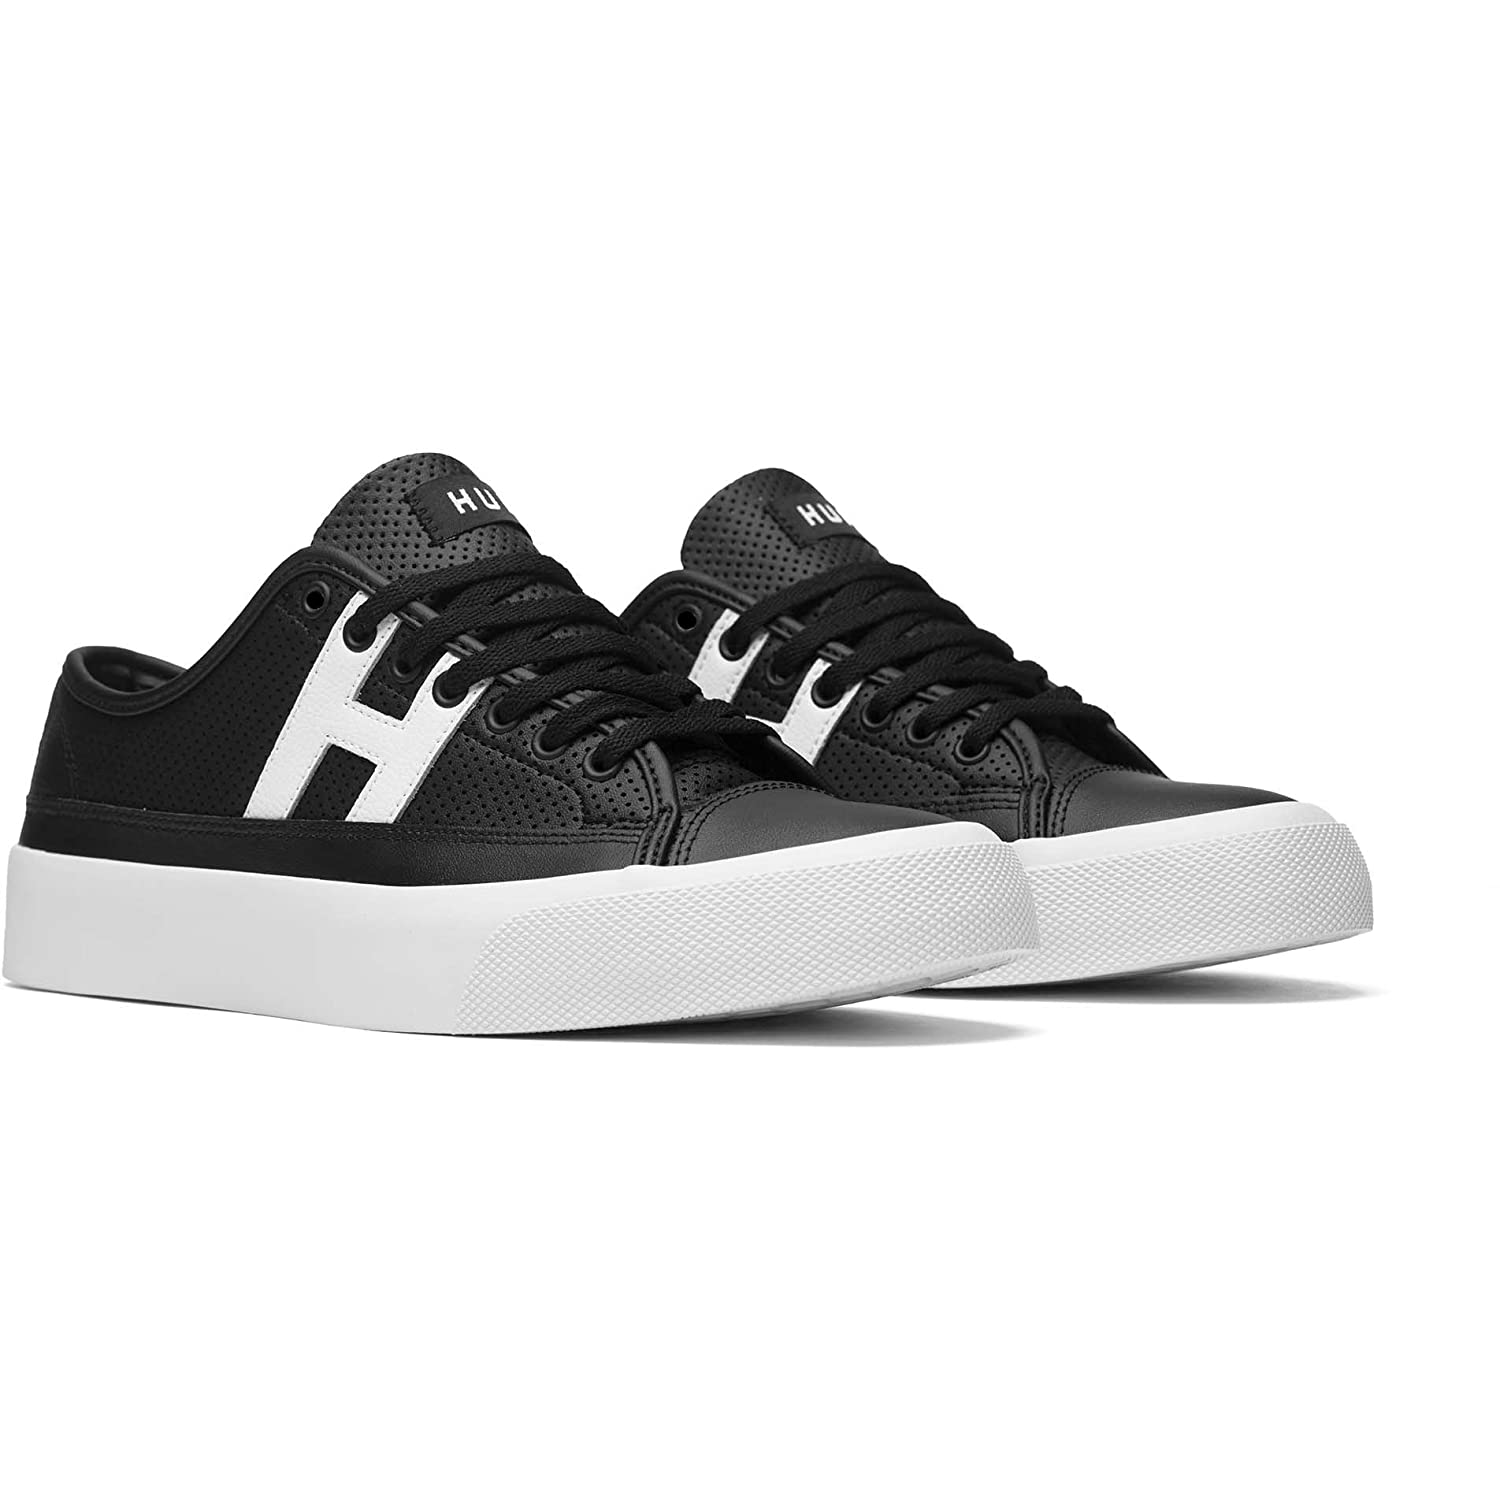 HUF Skateboard Shoes Hupper 2 Low Black/White 13 D(M) US|Black/White